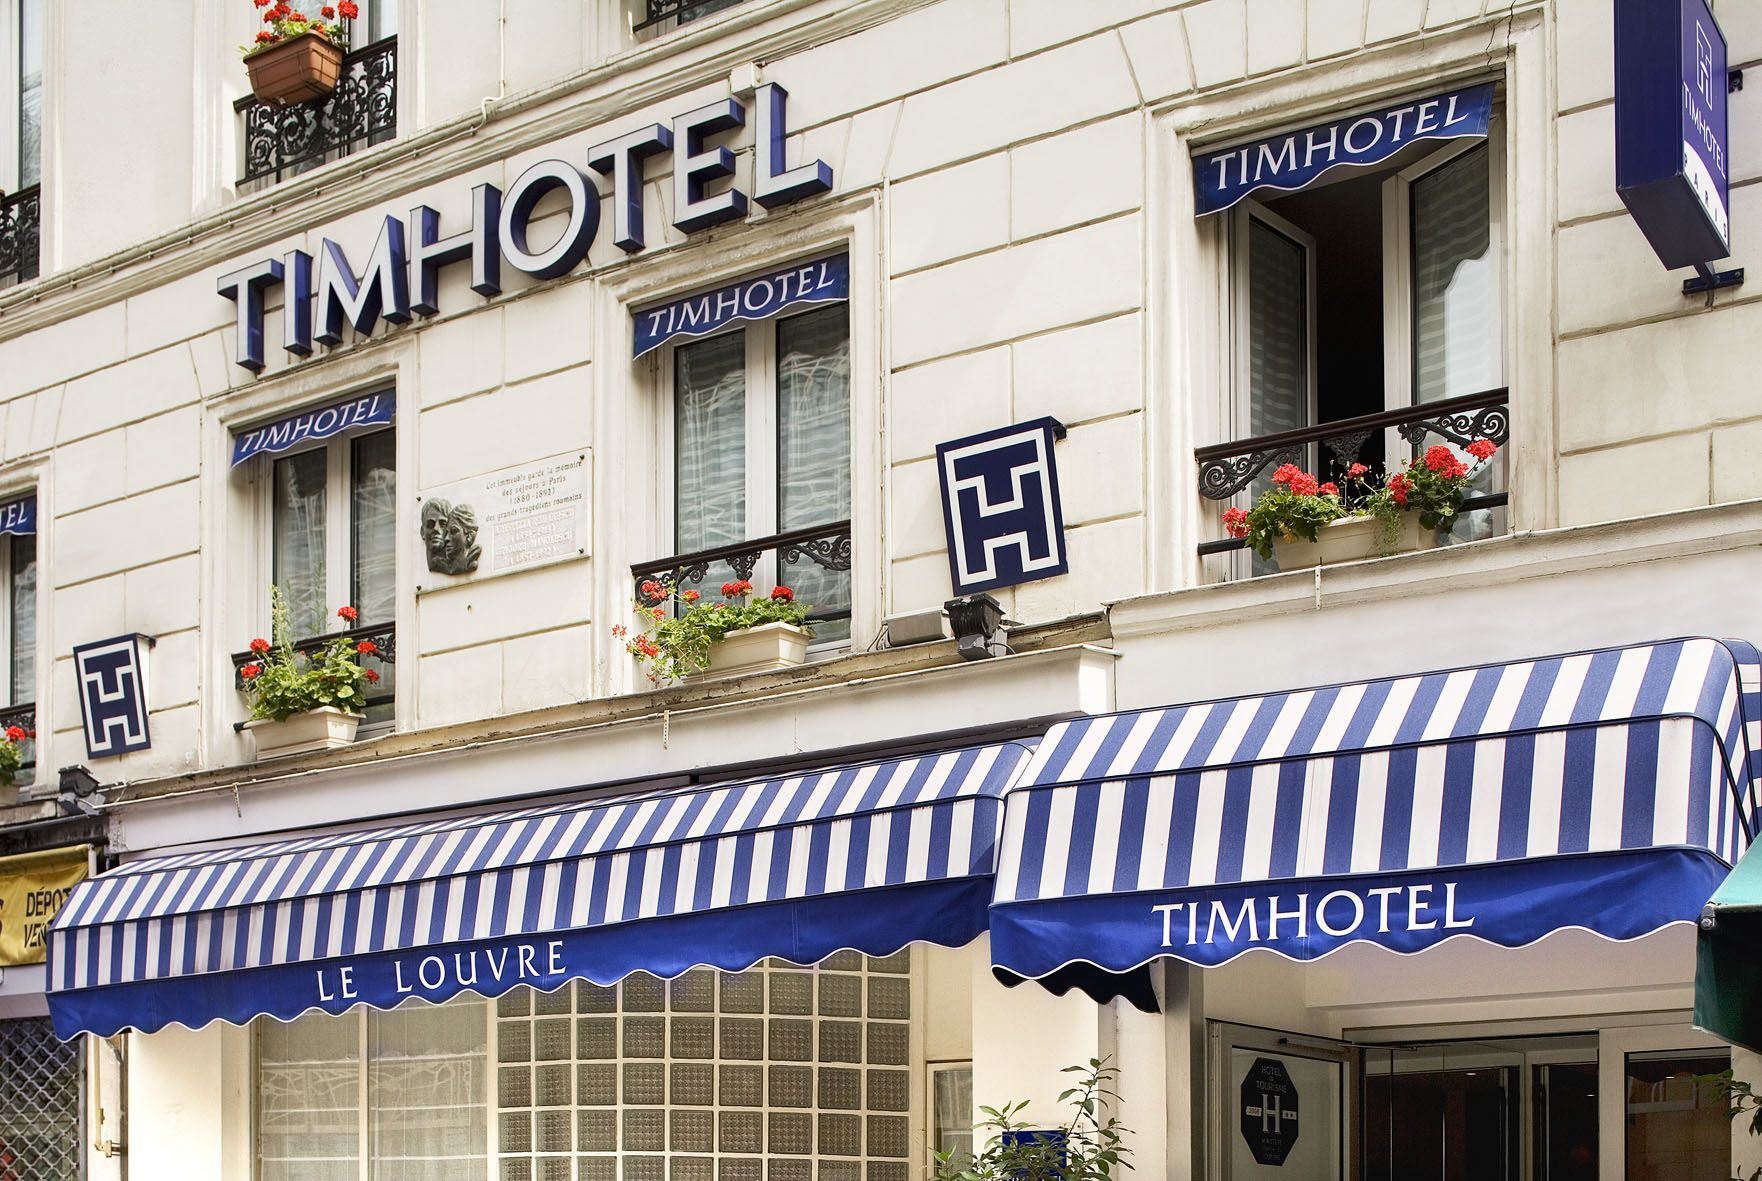 Hrg france recherche for Recherche hotel france